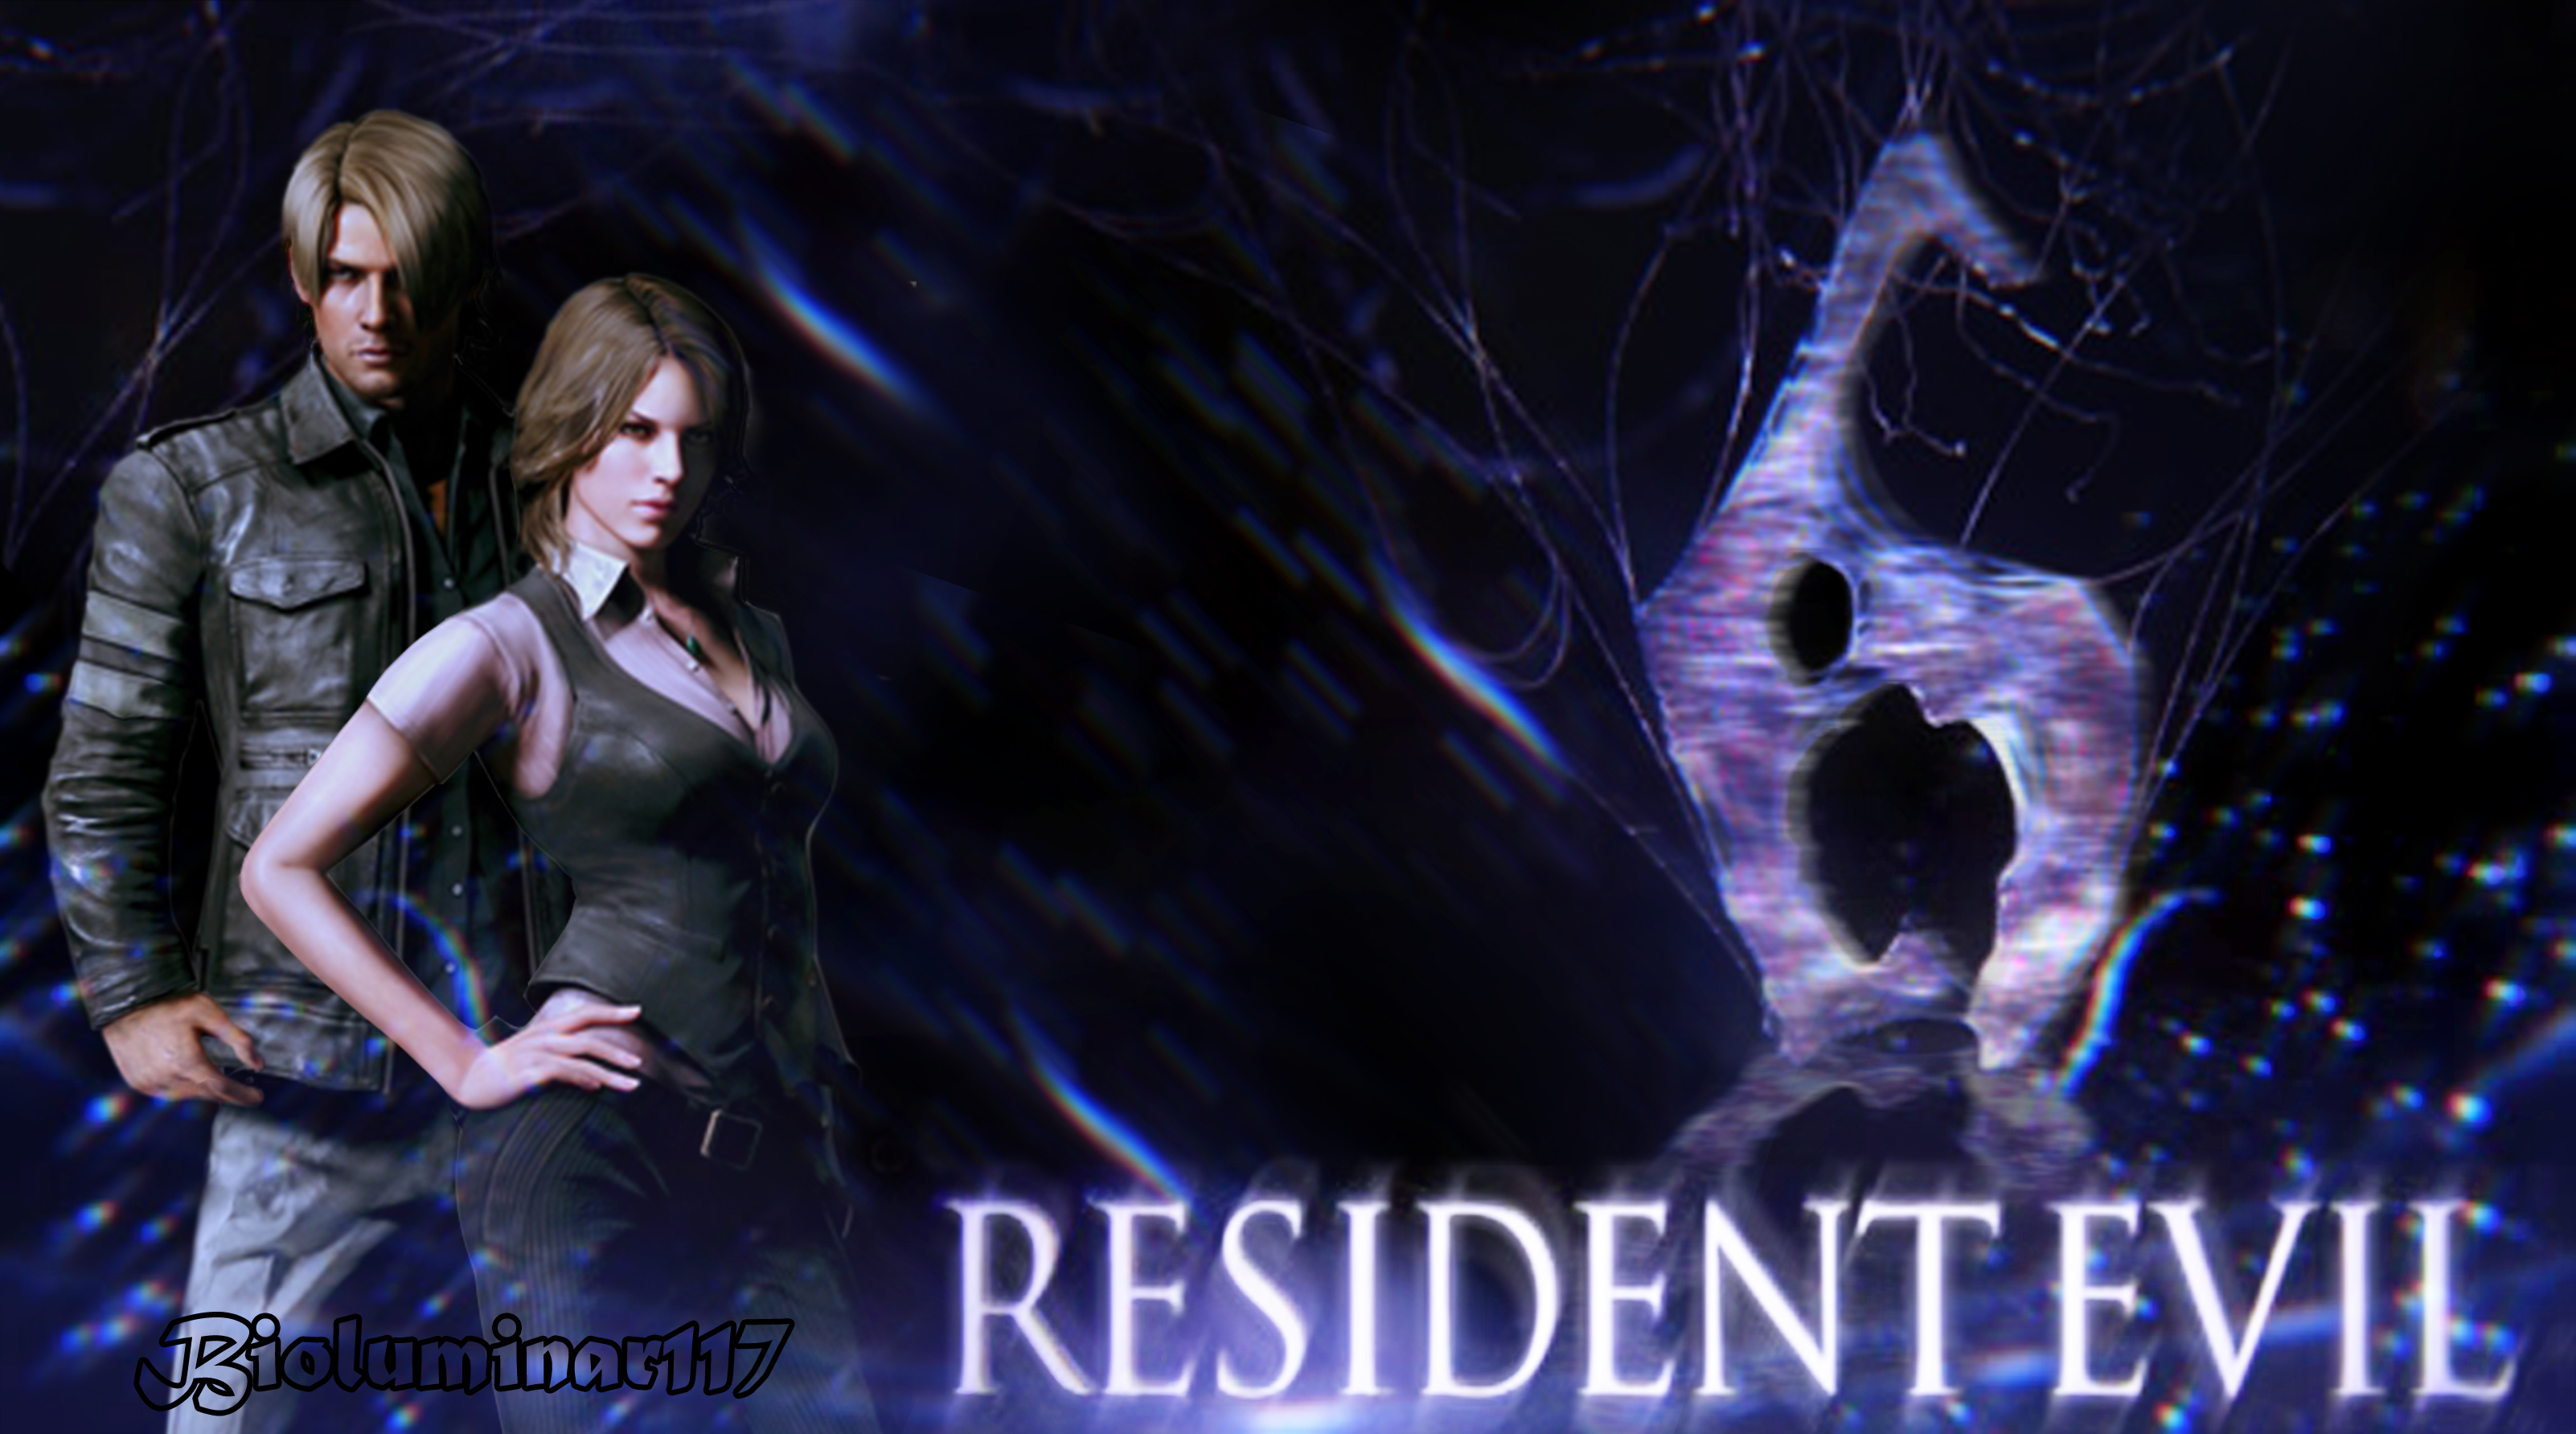 Resident Evil 6 Wallpaper By Bioluminar117